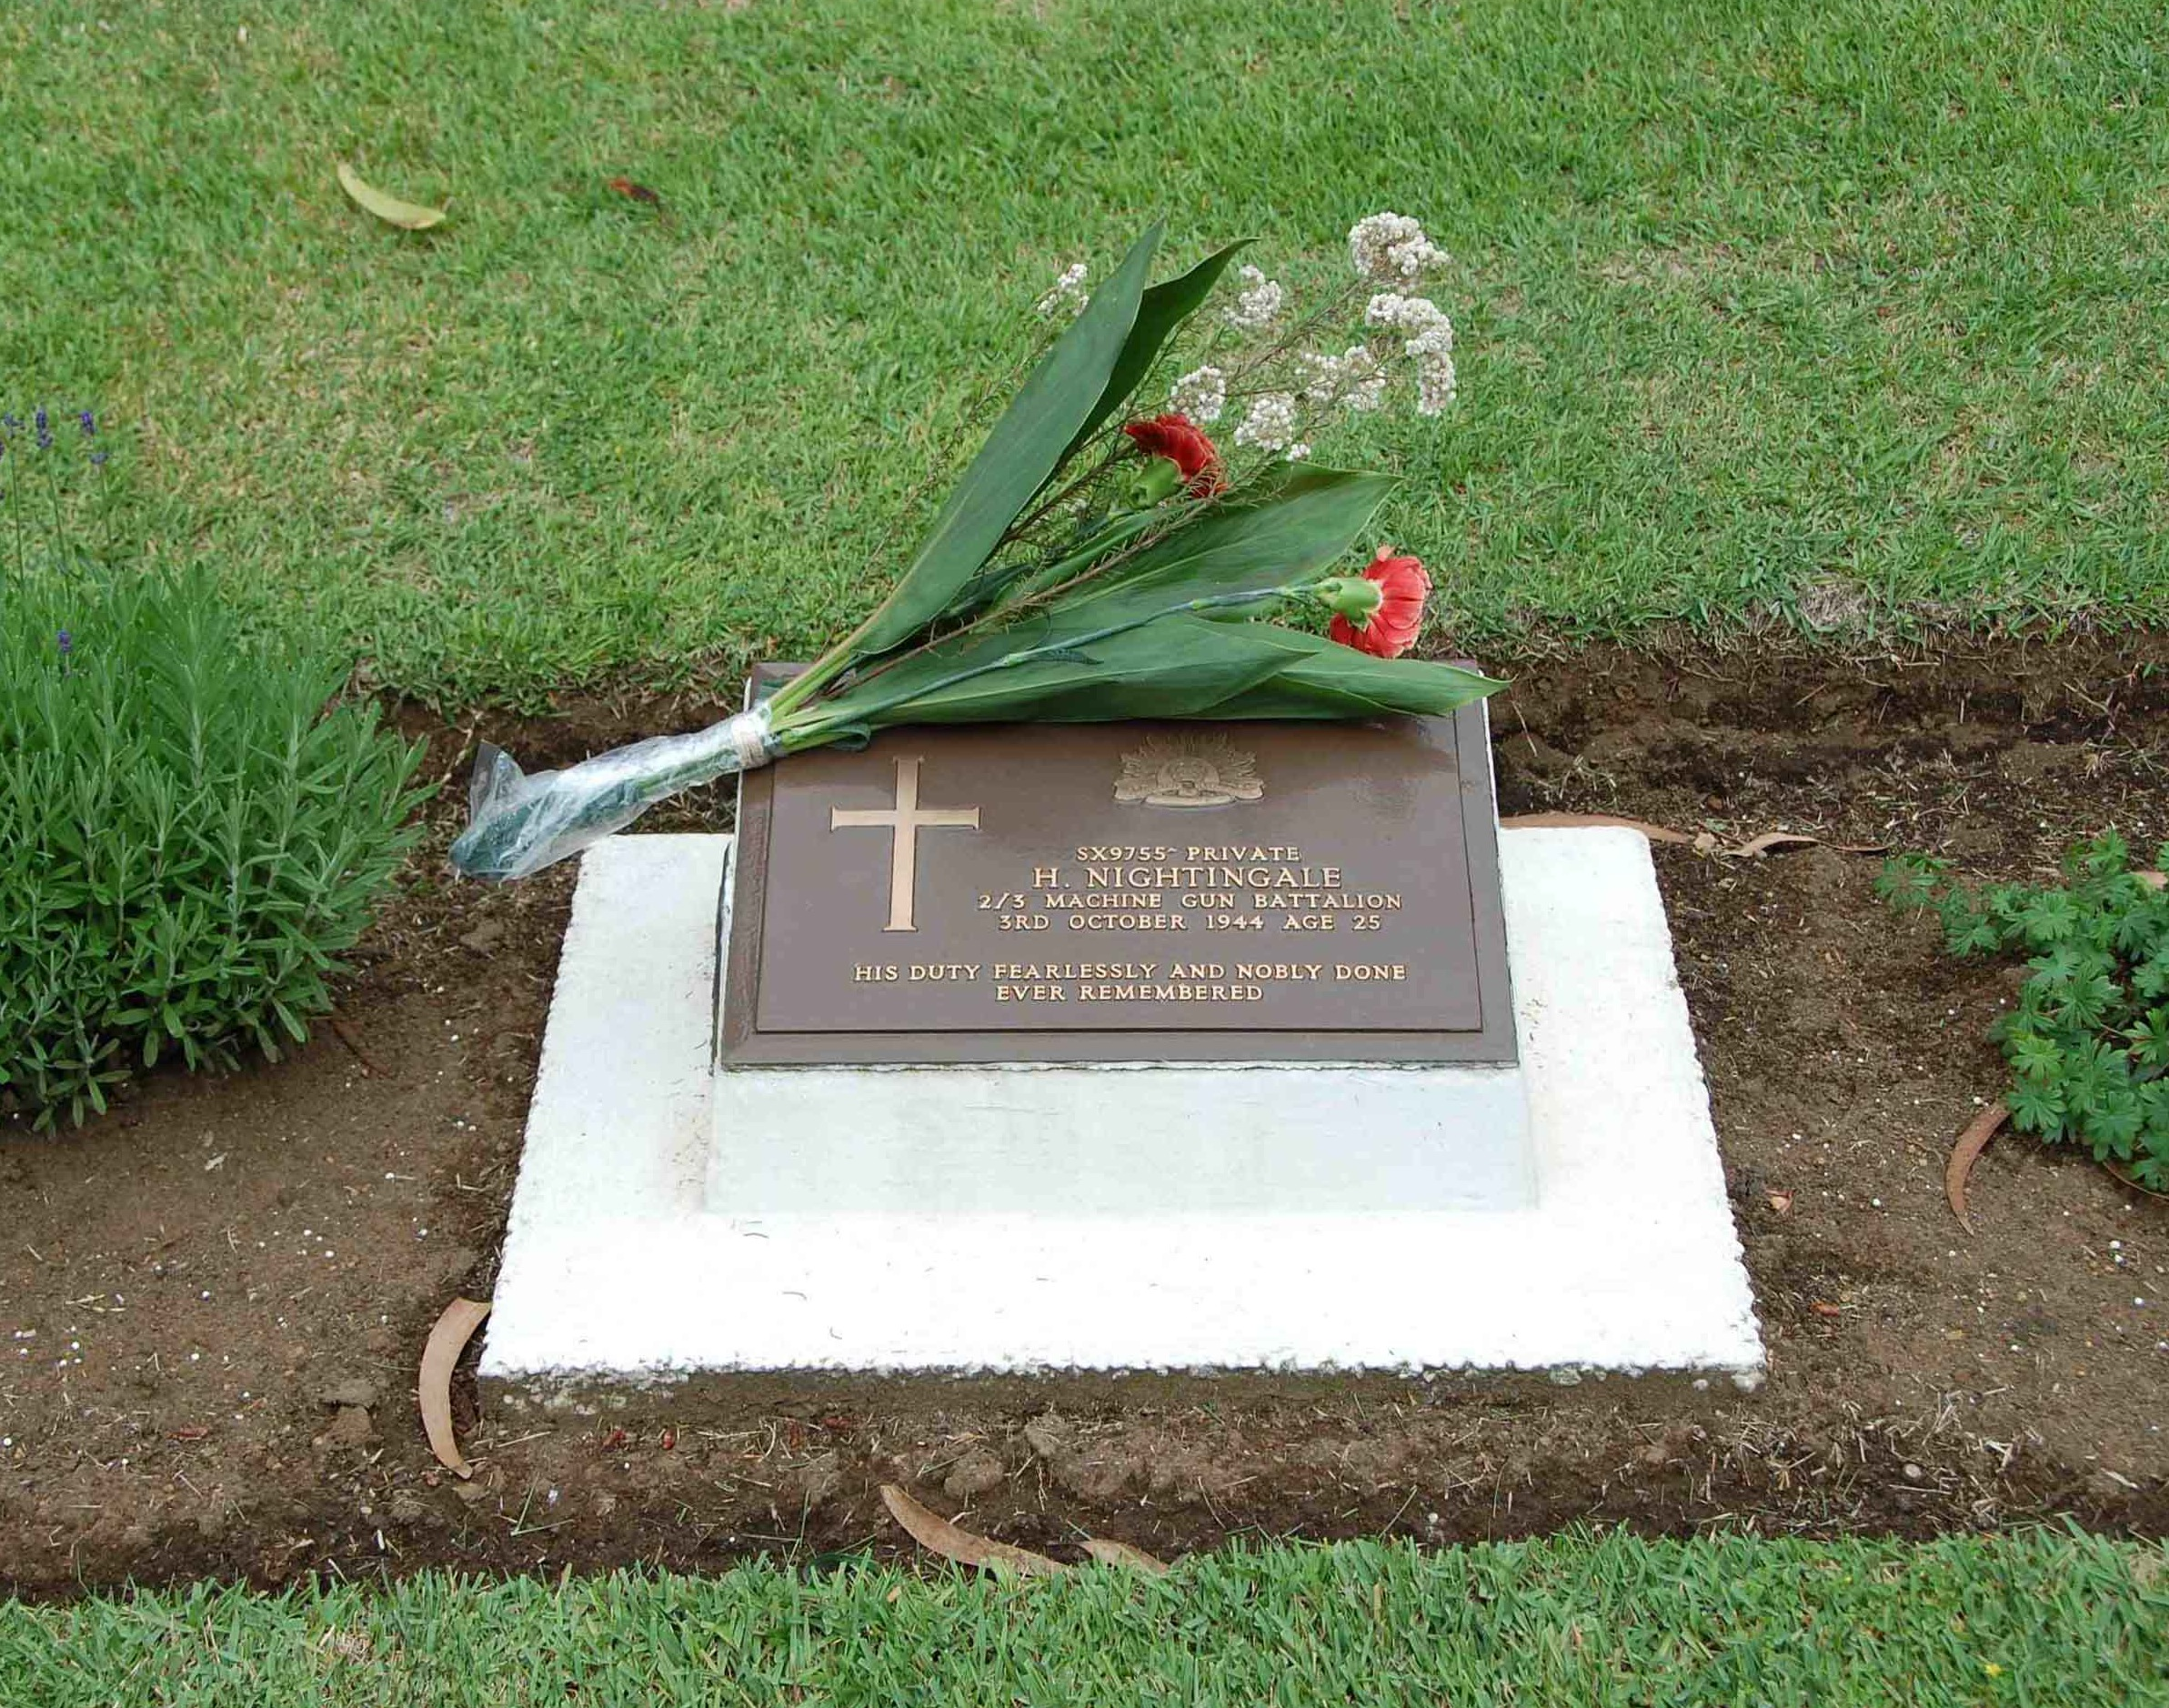 (11) NIGHTINGALE Howard (SX9755), Howard's grave with flowers